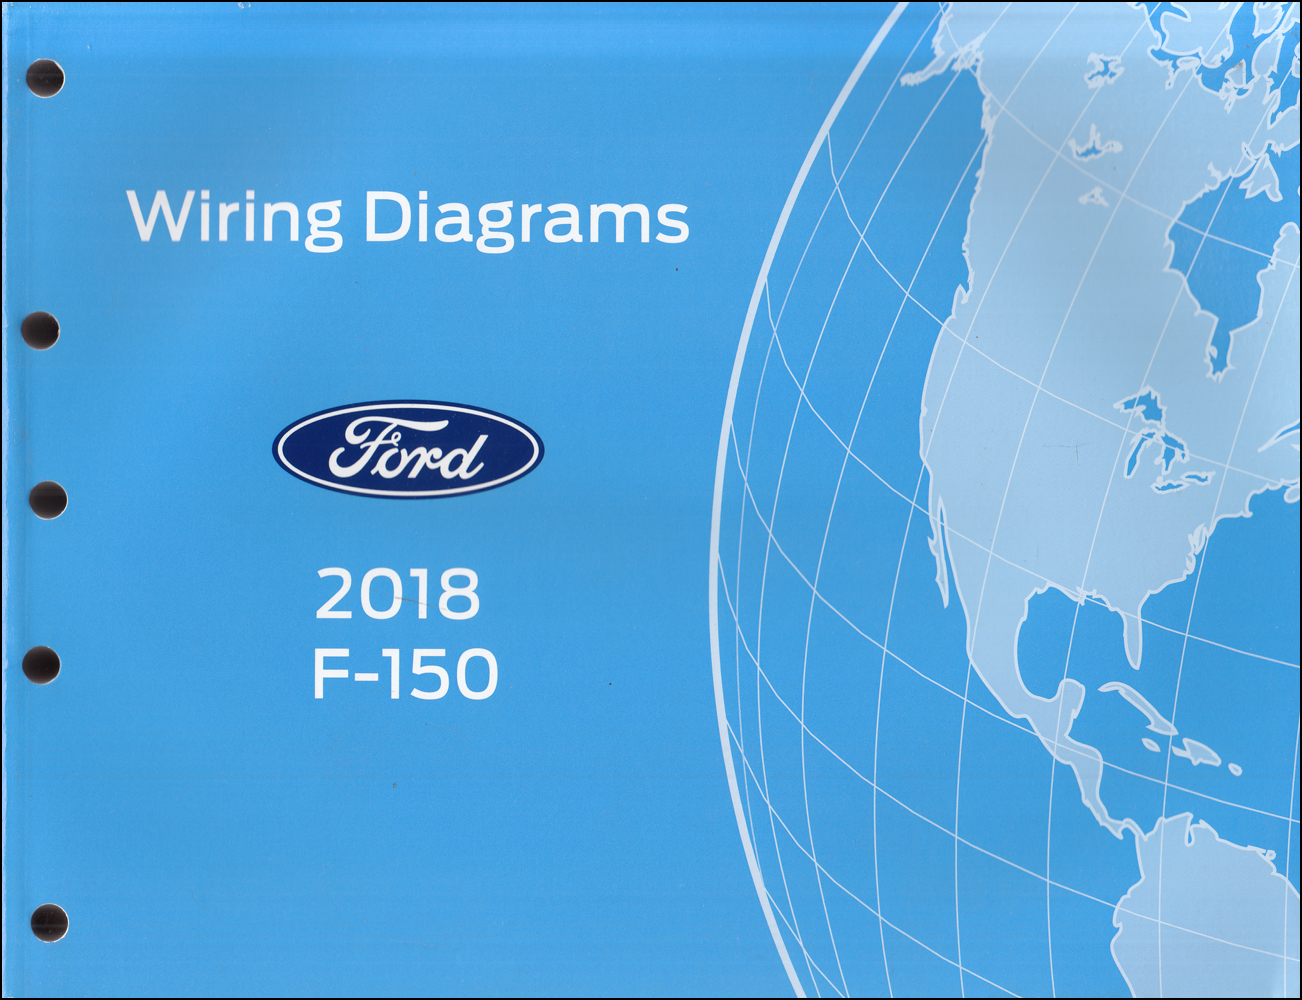 2018 Ford F-150 Wiring Diagram Manual Original | Ford F150 Wiring Diagrams |  | Faxon Auto Literature